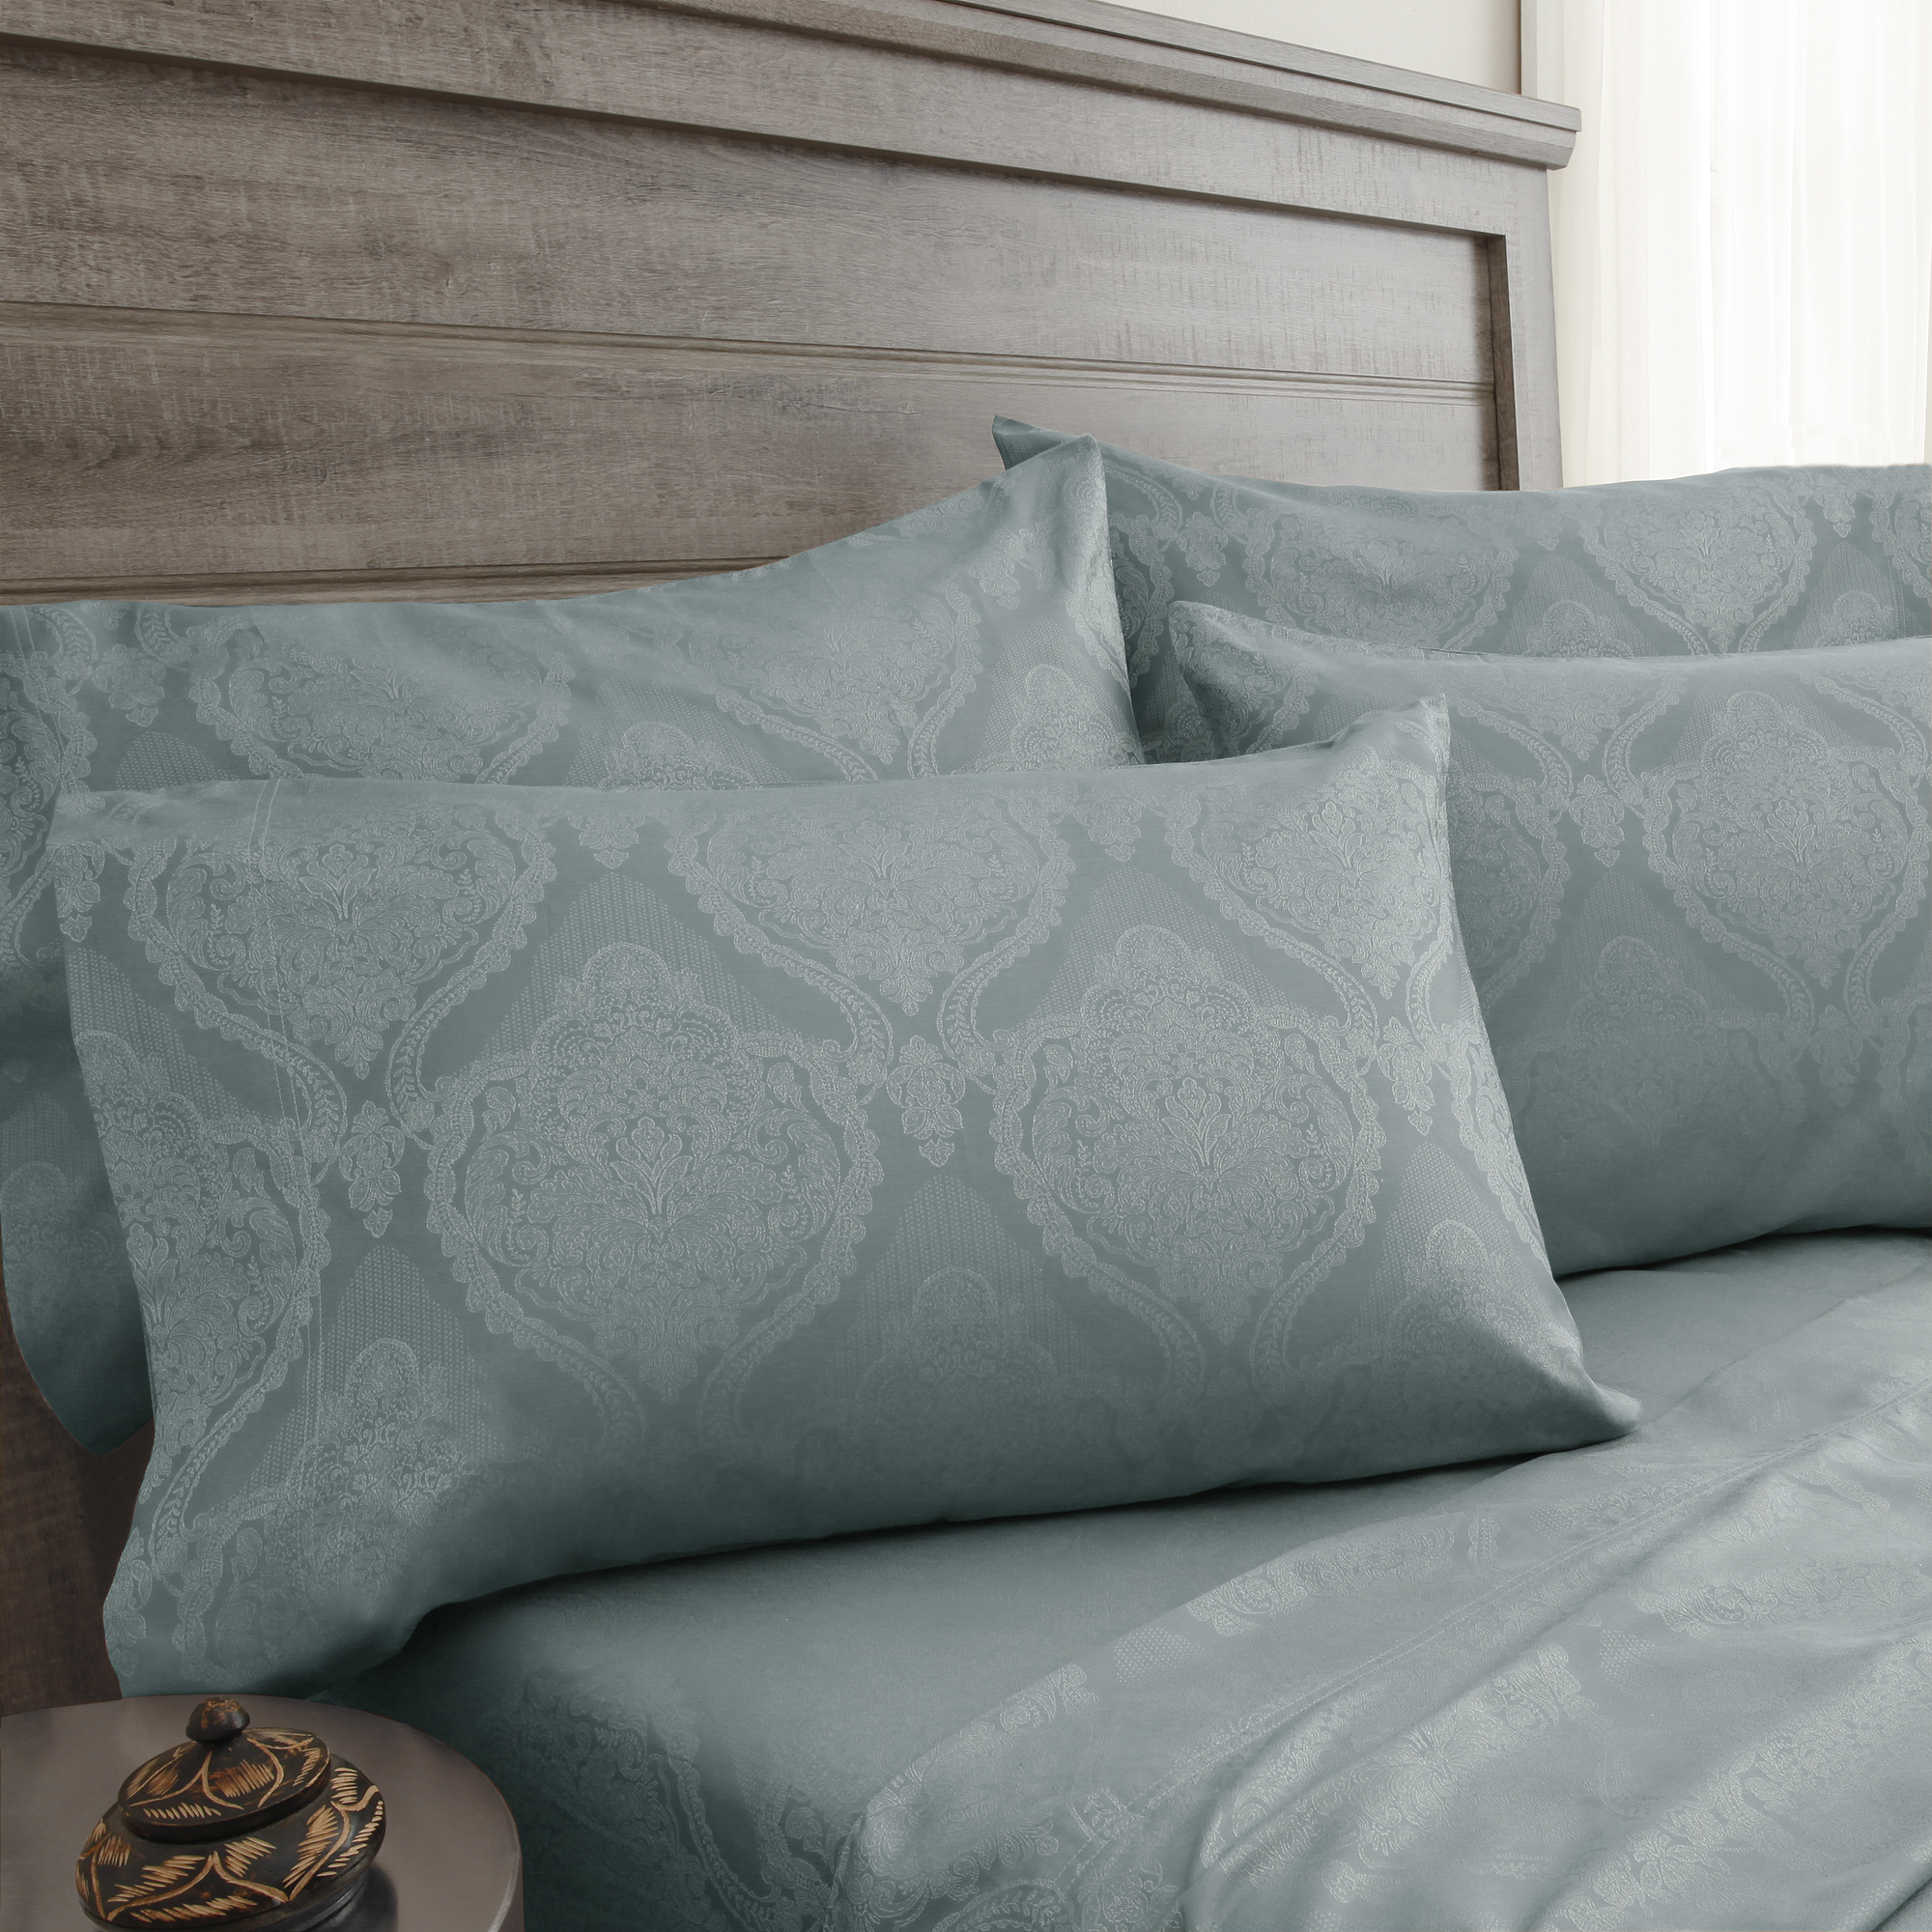 800 Thread Count Jacquard Damask Bonus Sheet Set